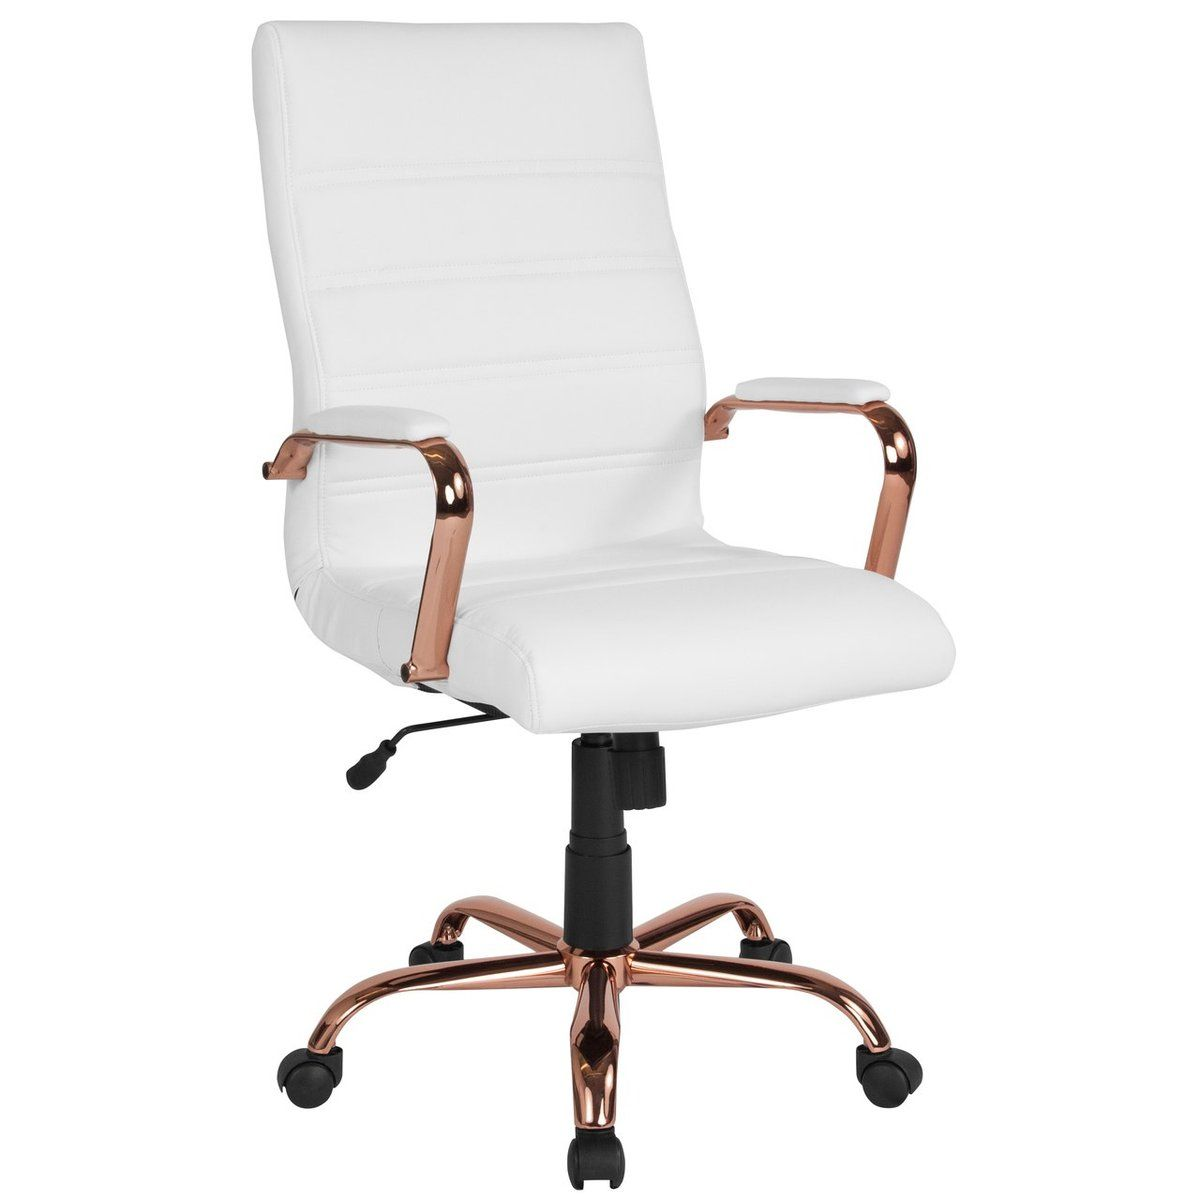 Amazing White High Back Leather Chair By Flash Furniture Go 2286H Wh Caraccident5 Cool Chair Designs And Ideas Caraccident5Info